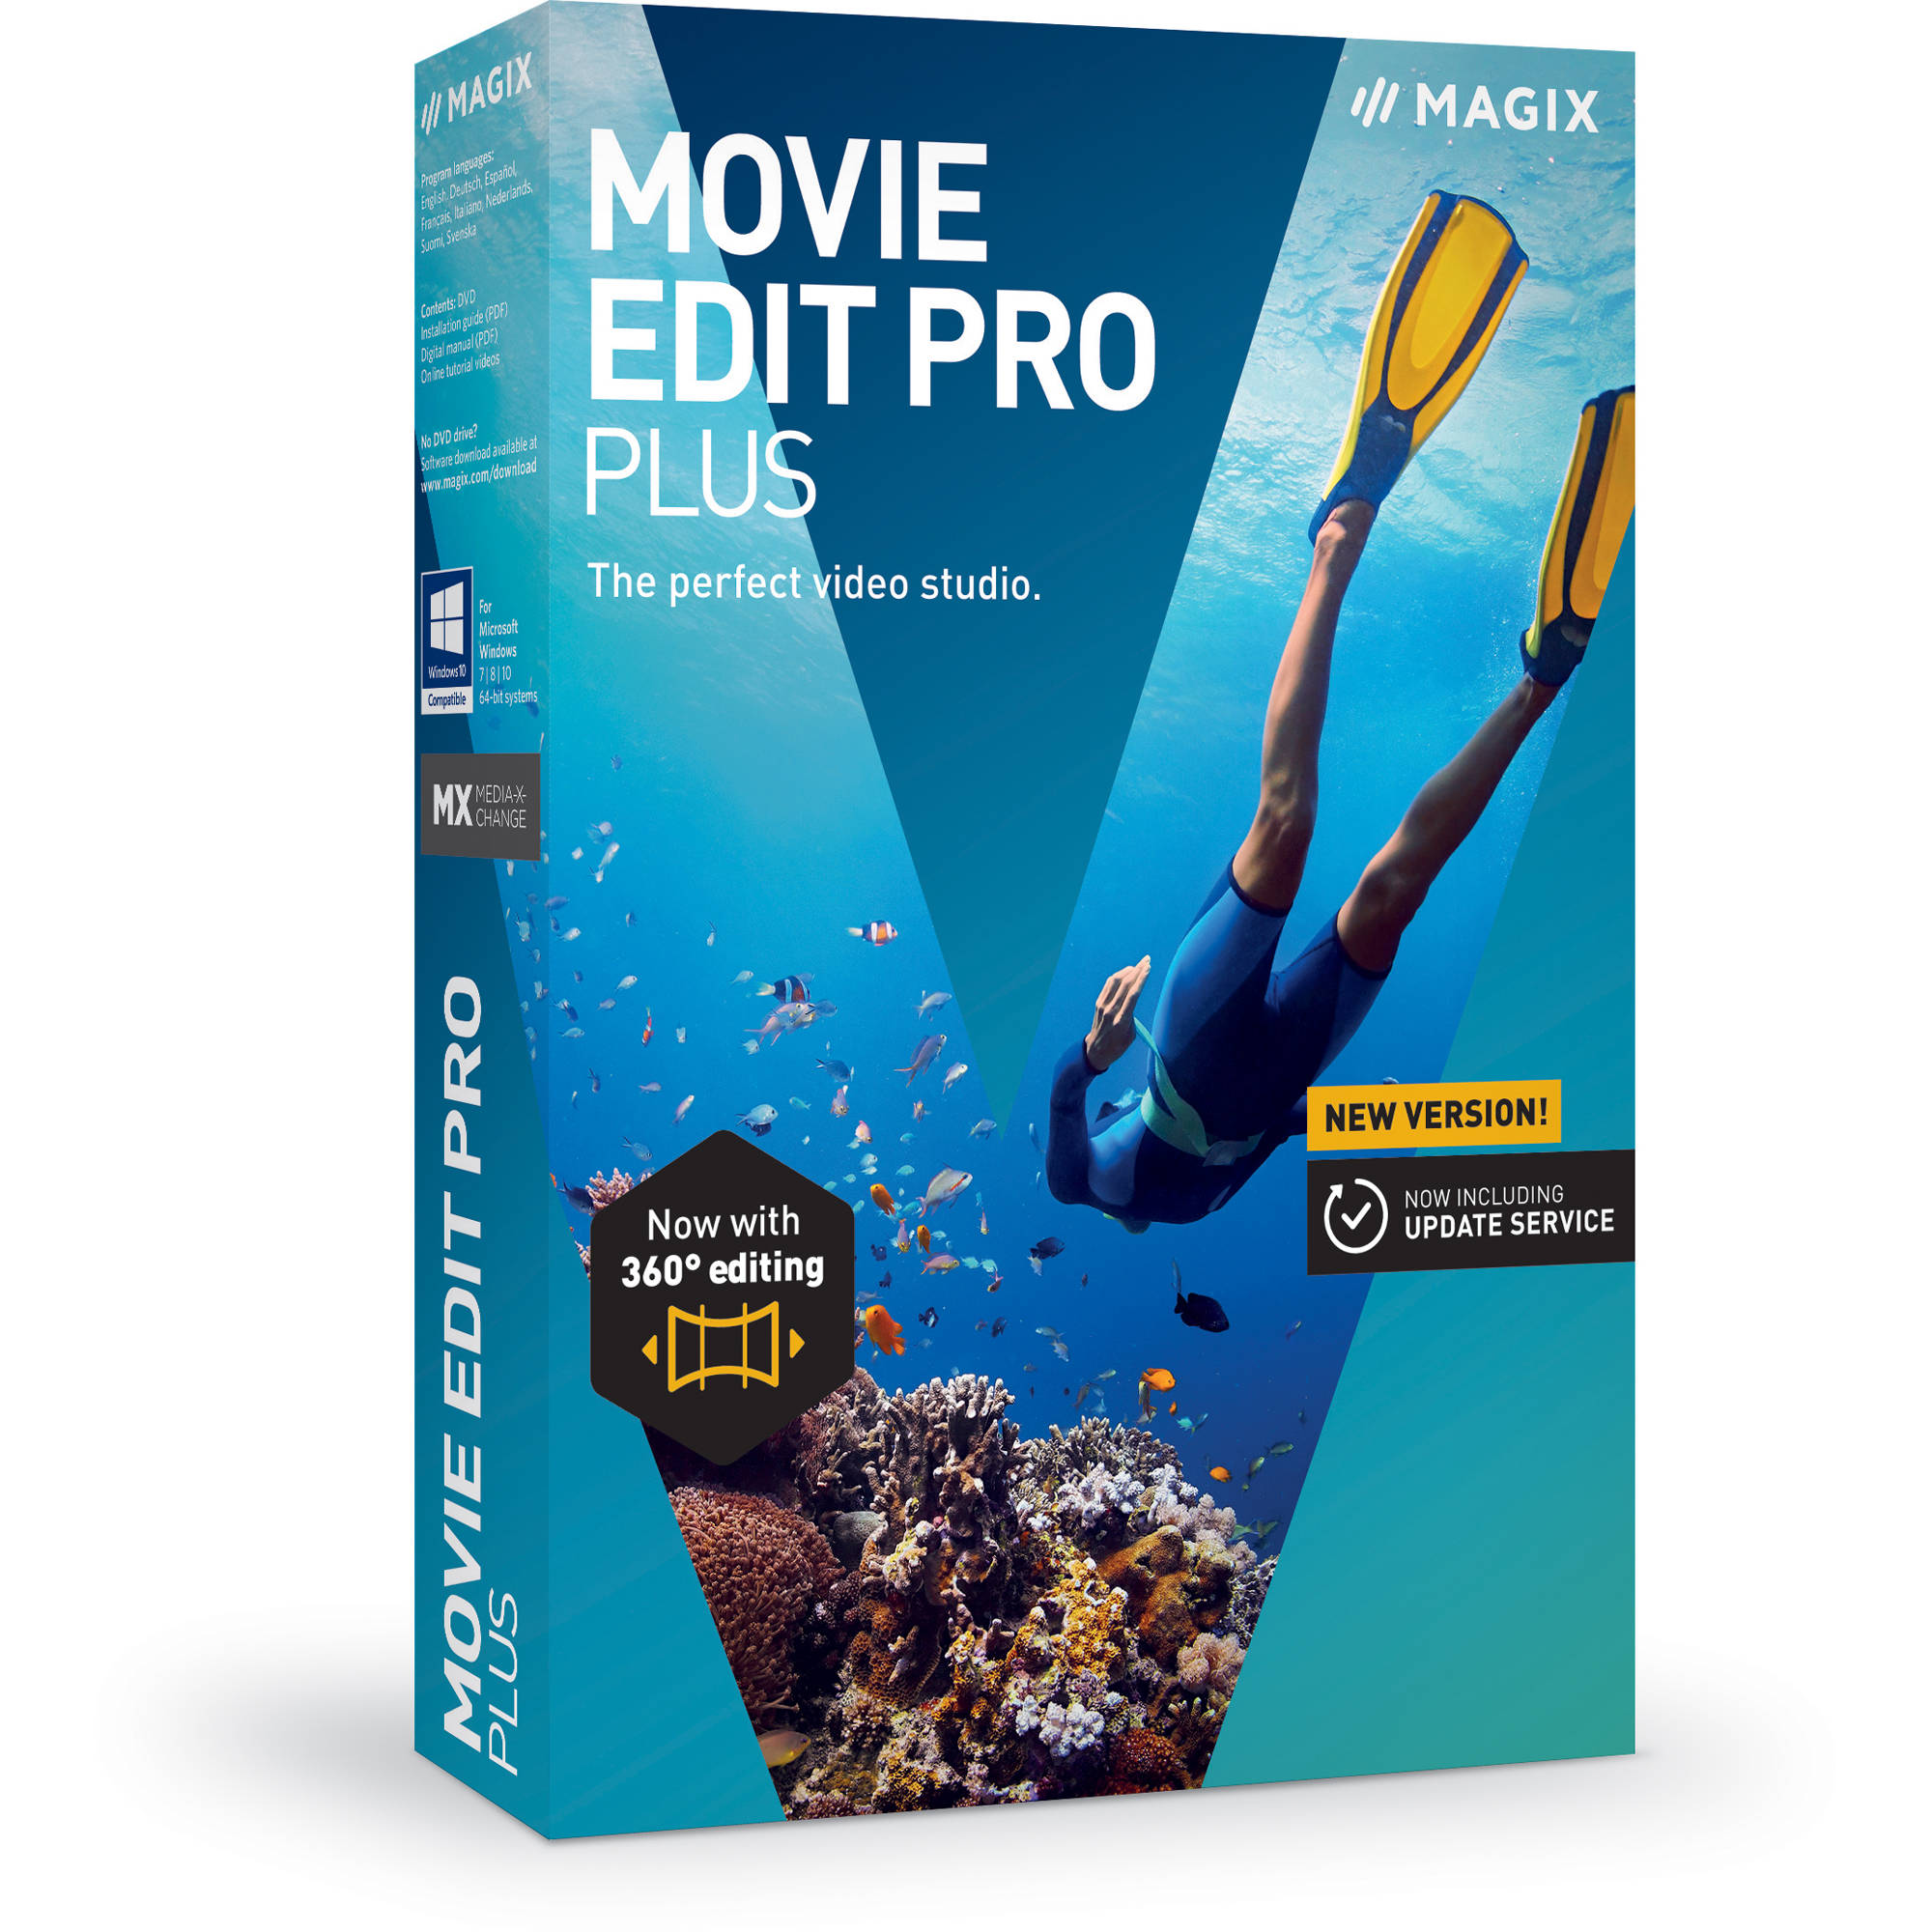 magix movie edit pro templates - magix entertainment movie edit pro plus anr005972esdl2 b h